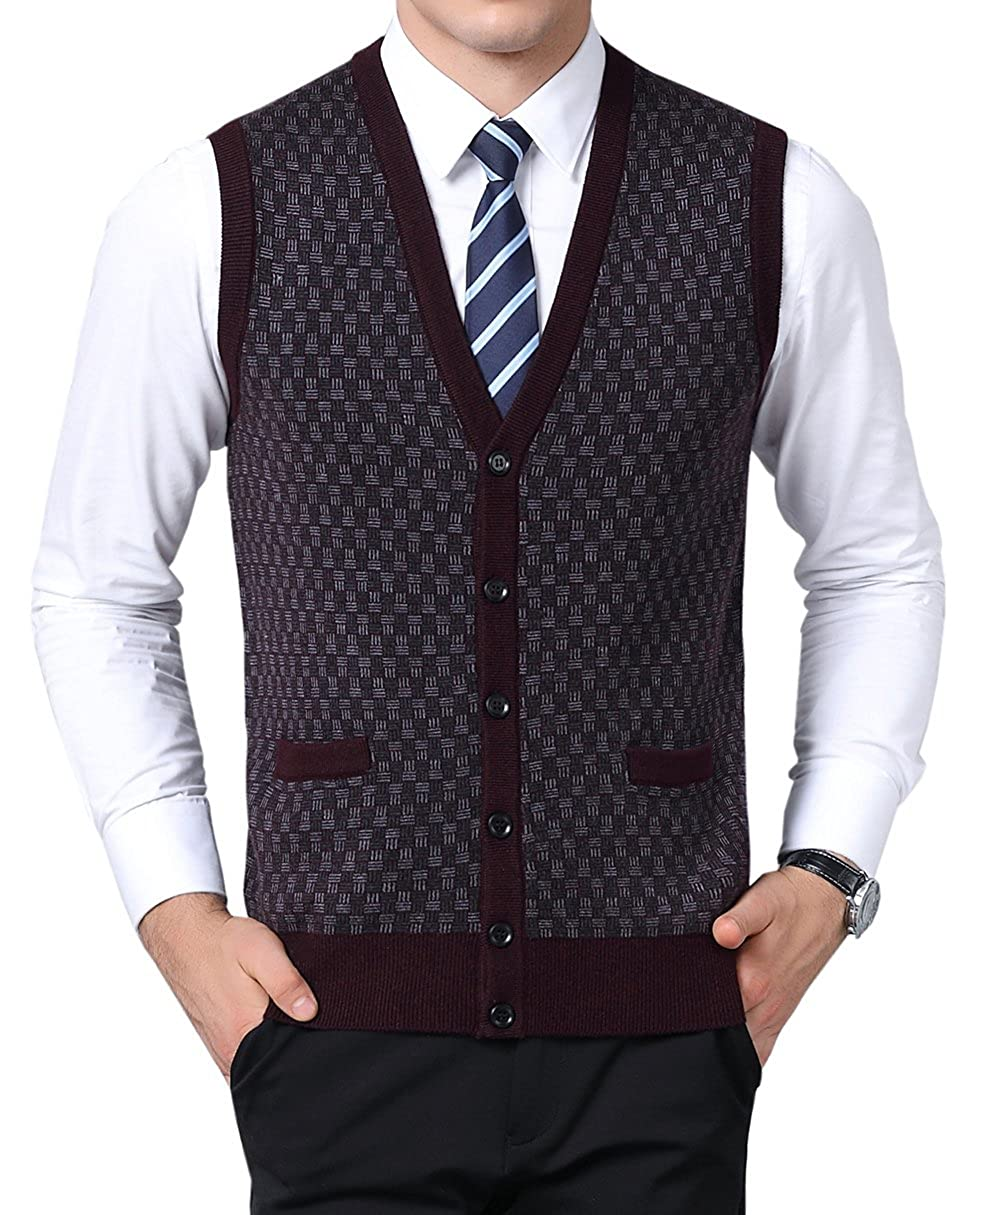 MYMYU Mens Winter Warm V-Neck Sleeveless Vest Classic Business Gentleman Knitwear Waistcoat Sweater Wool Tank Tops Gilet with Buttons